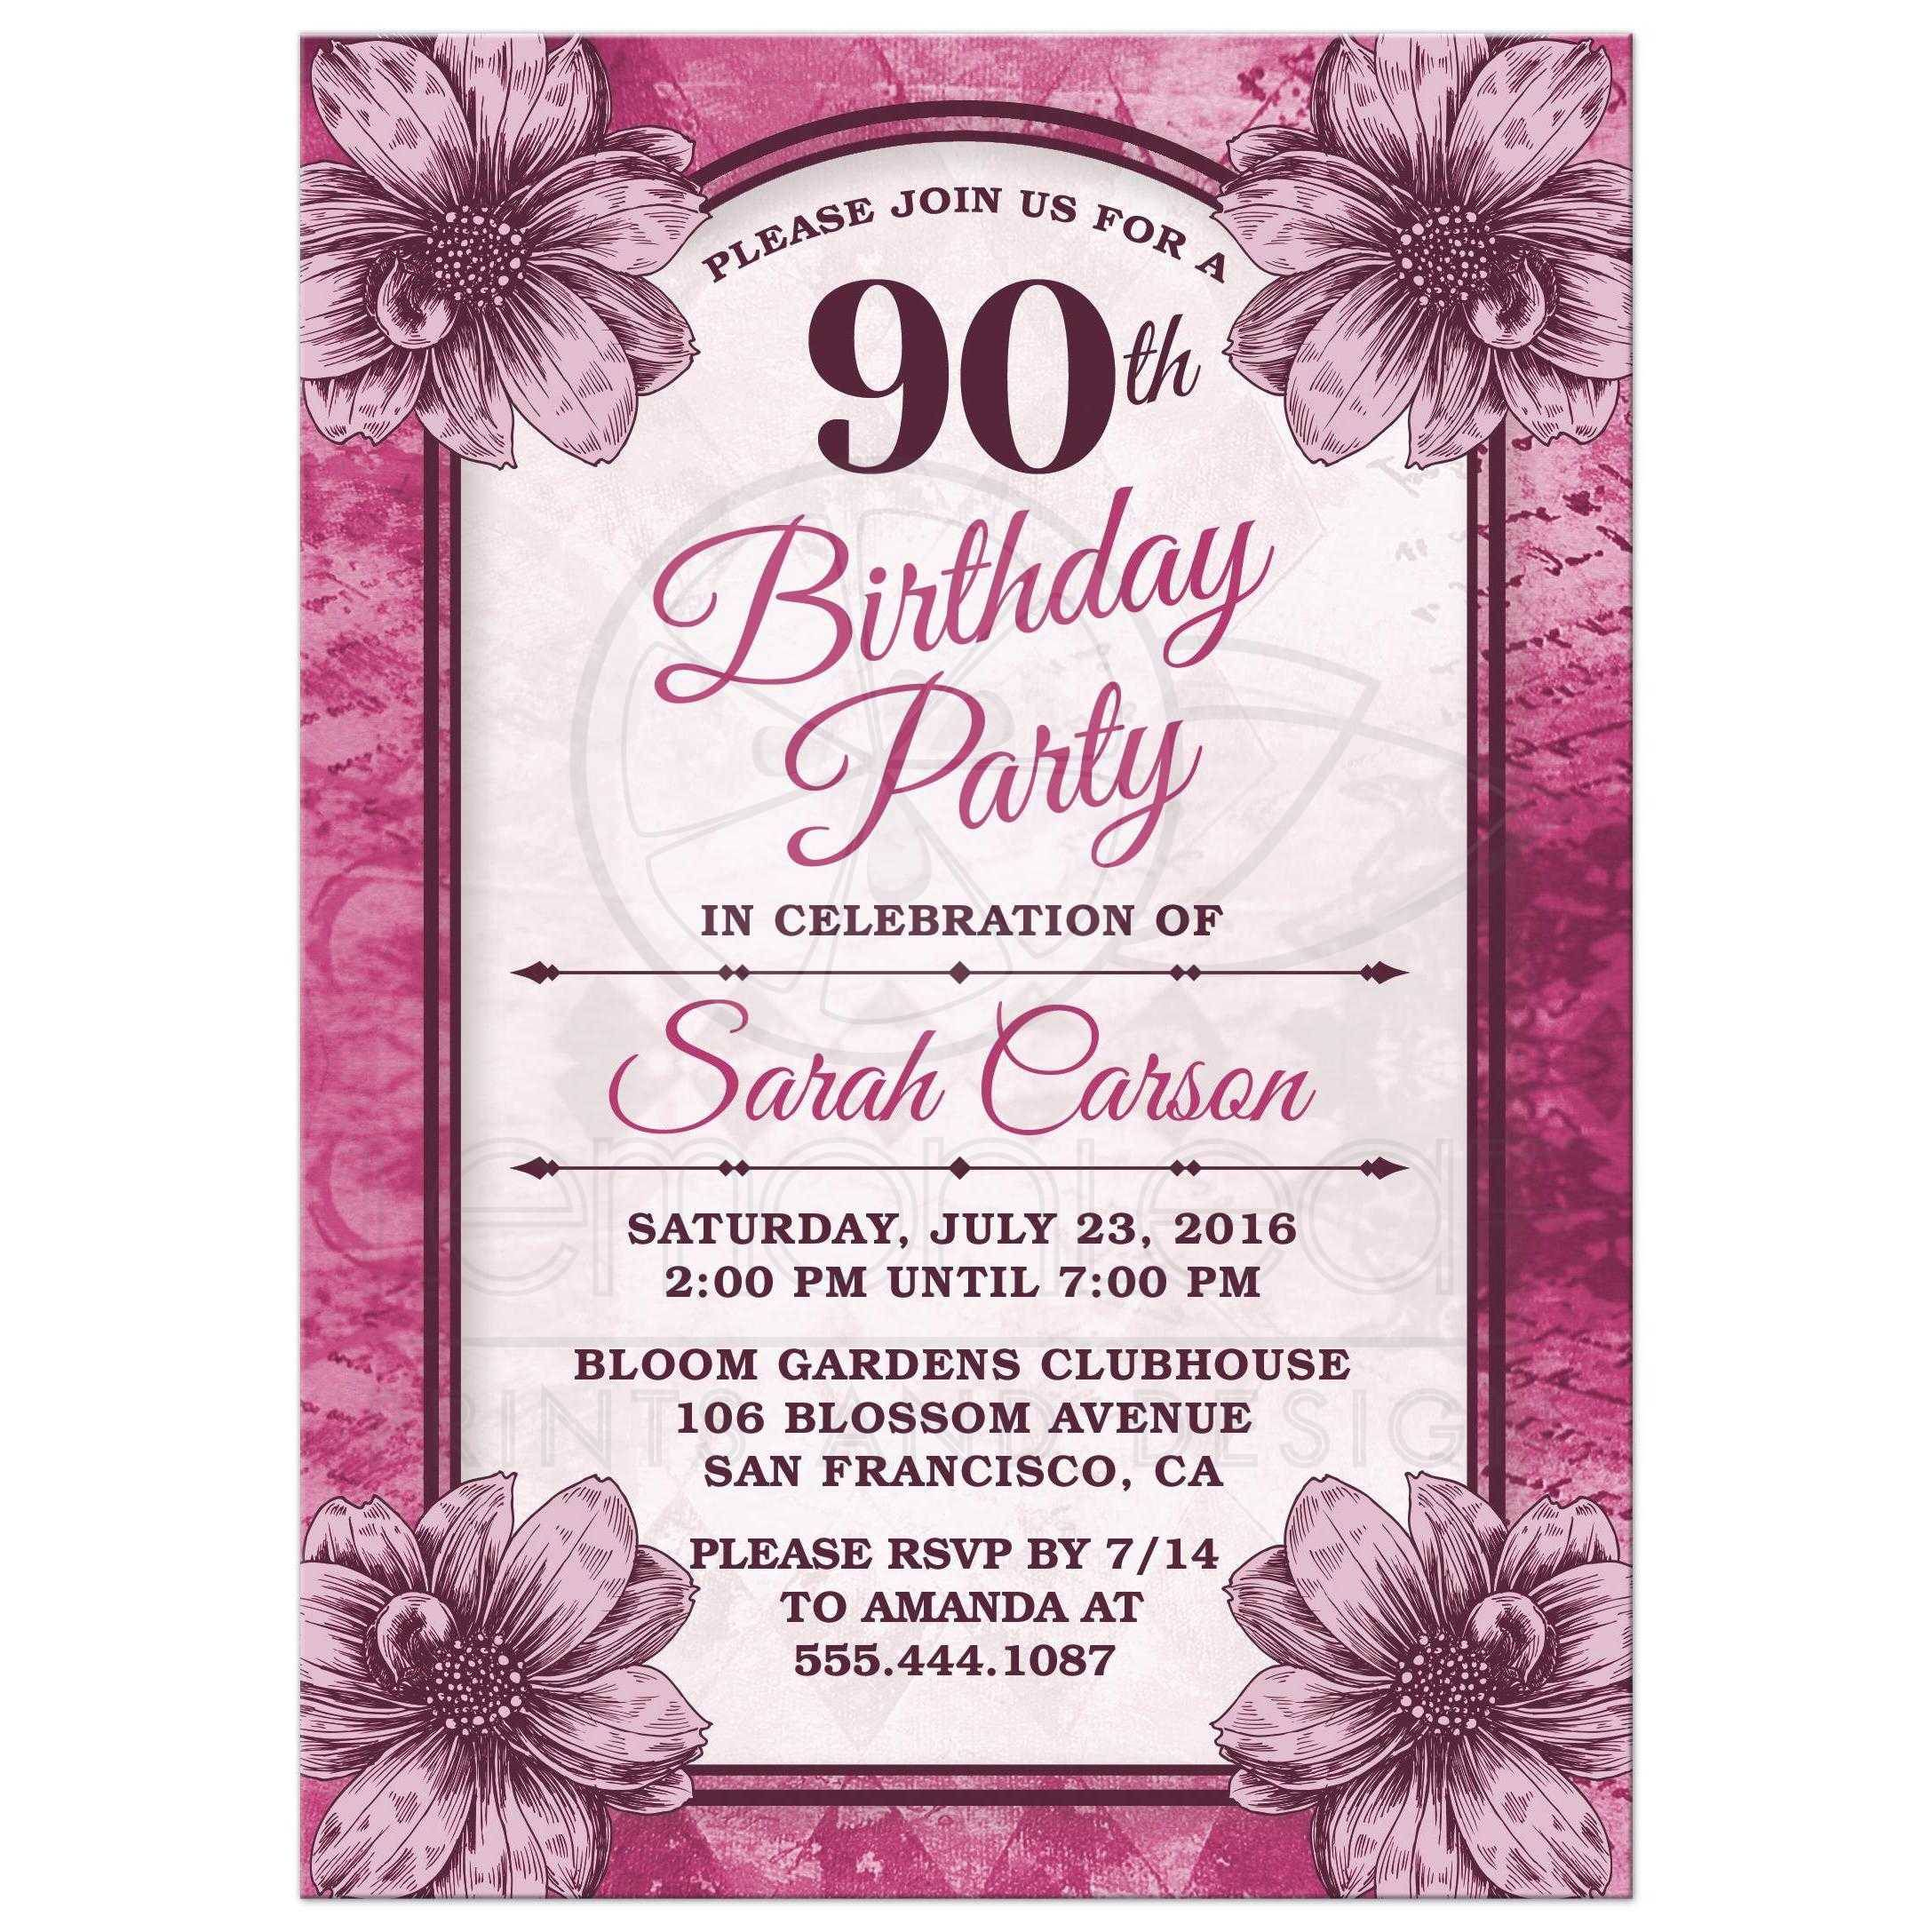 90th birthday party invitations templates free party ideas in 2018